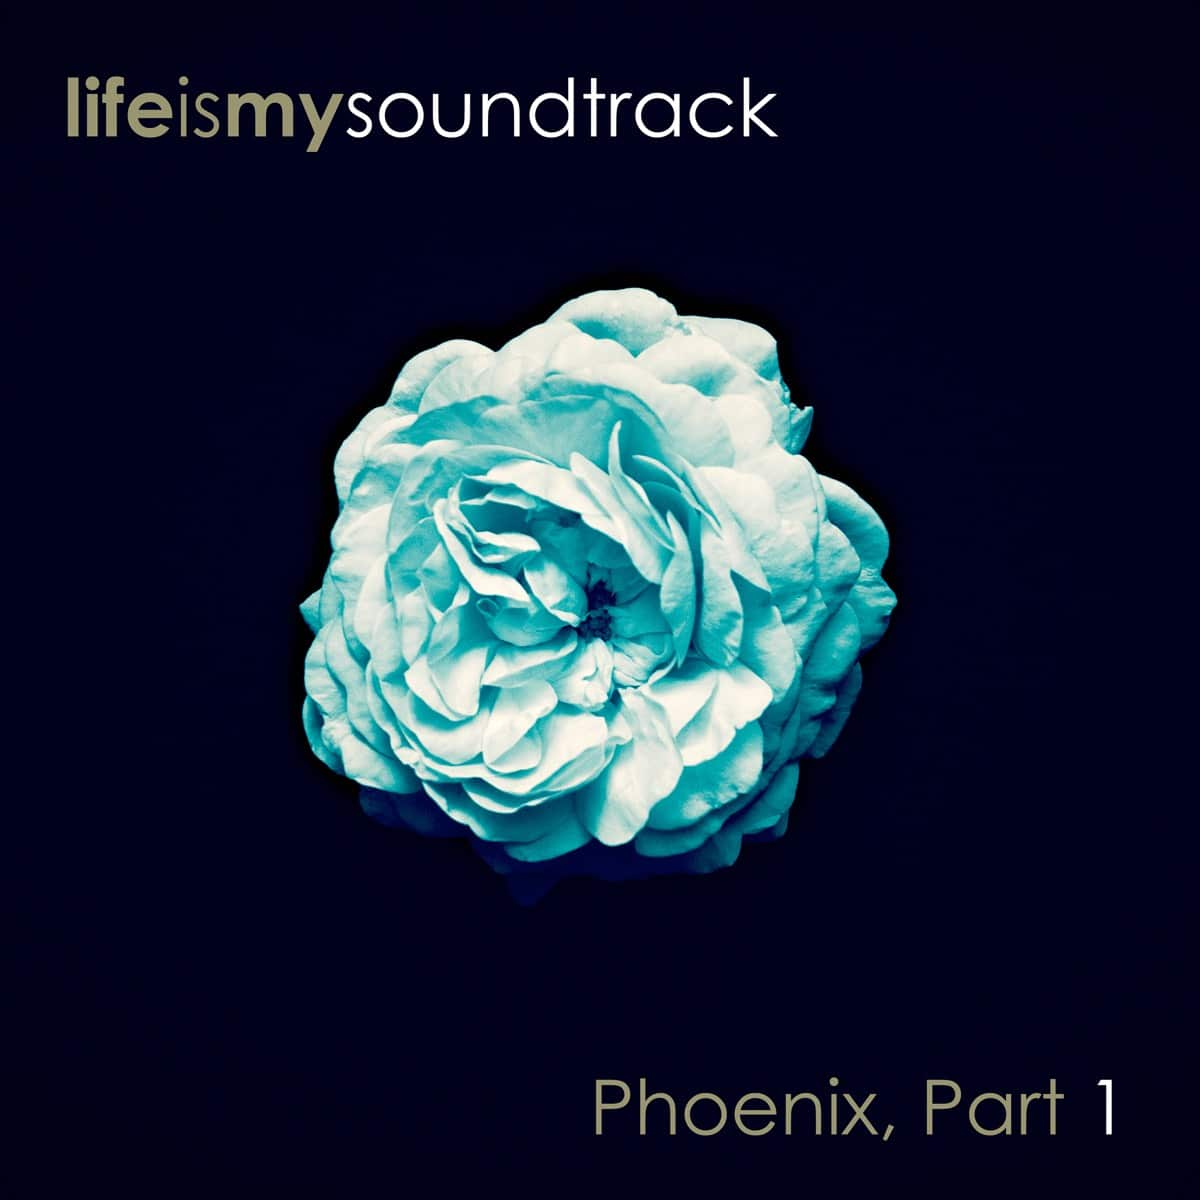 The album Phoenix, Part 1 by Life Is My Soundtrack - Part 5 of a collection of songs created over several years, but never finished until now